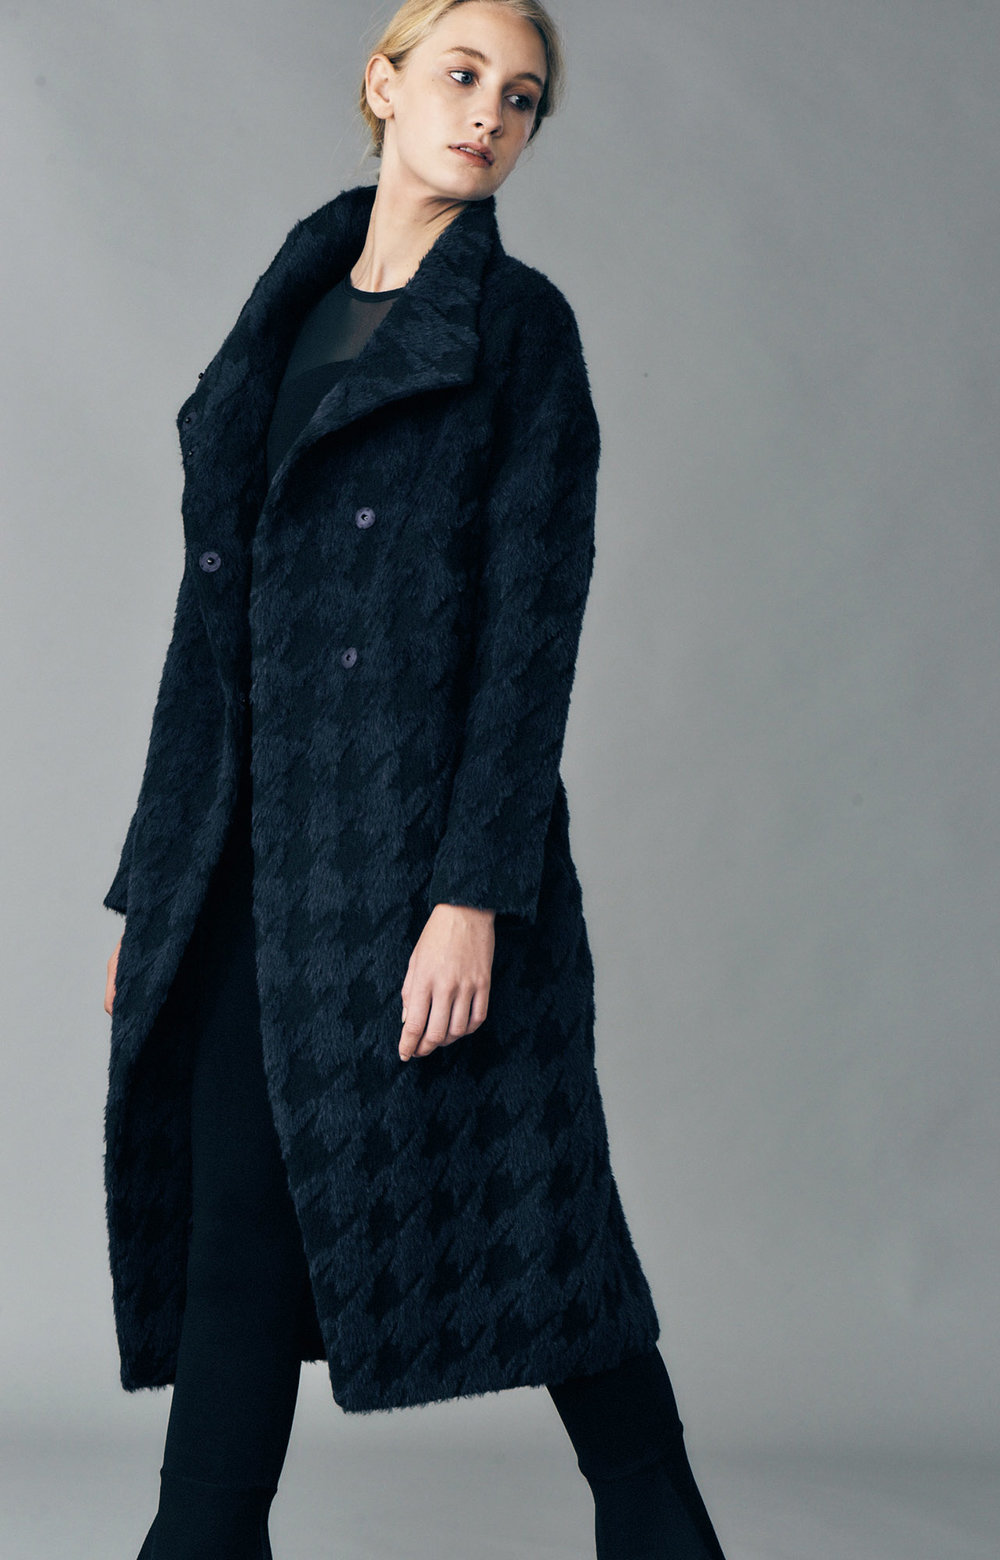 COAT JAZMIN AT-336   Colors:  houndstooth blue/black   Sizes: XS, S, M, L, XL